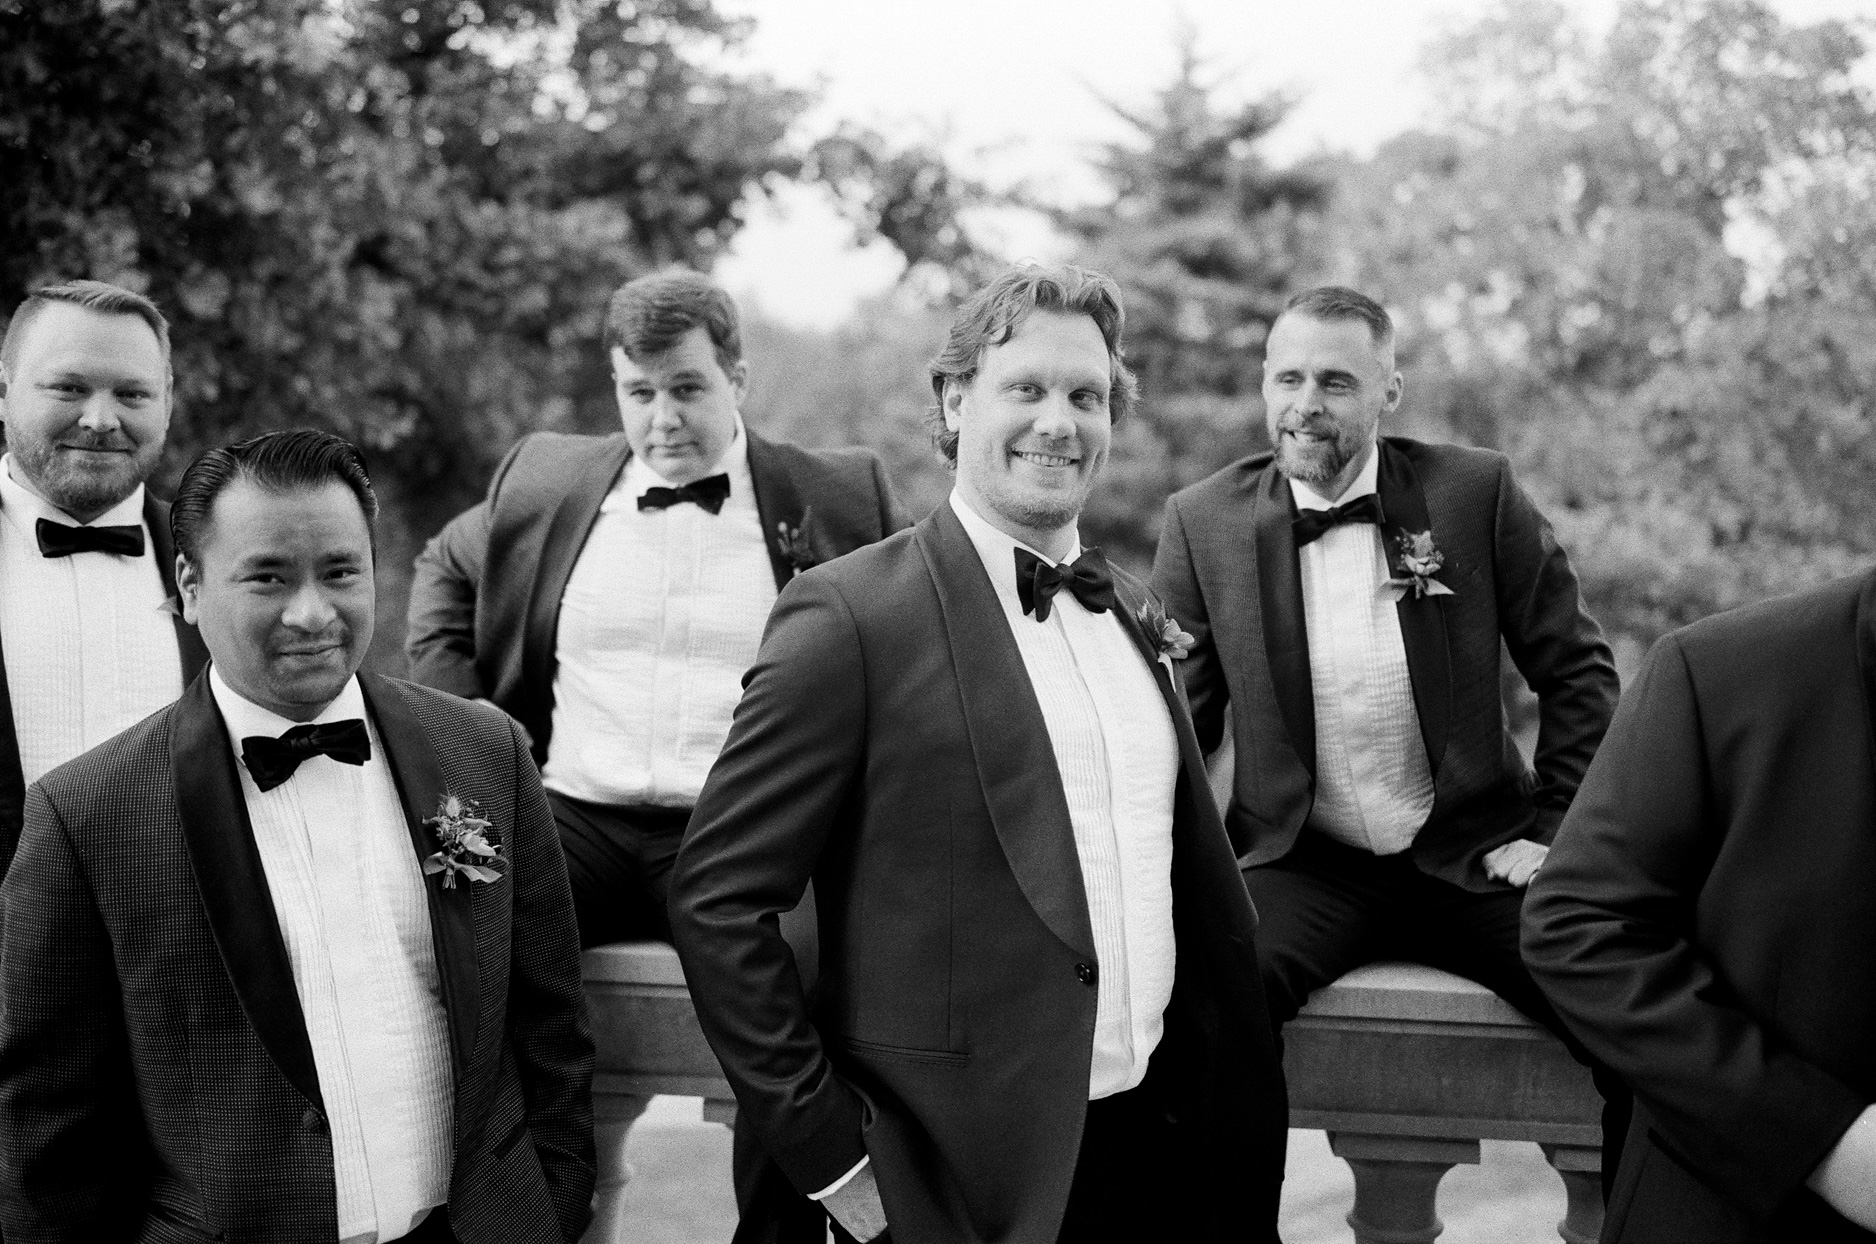 groomsmen in suits and bowties posing on balcony